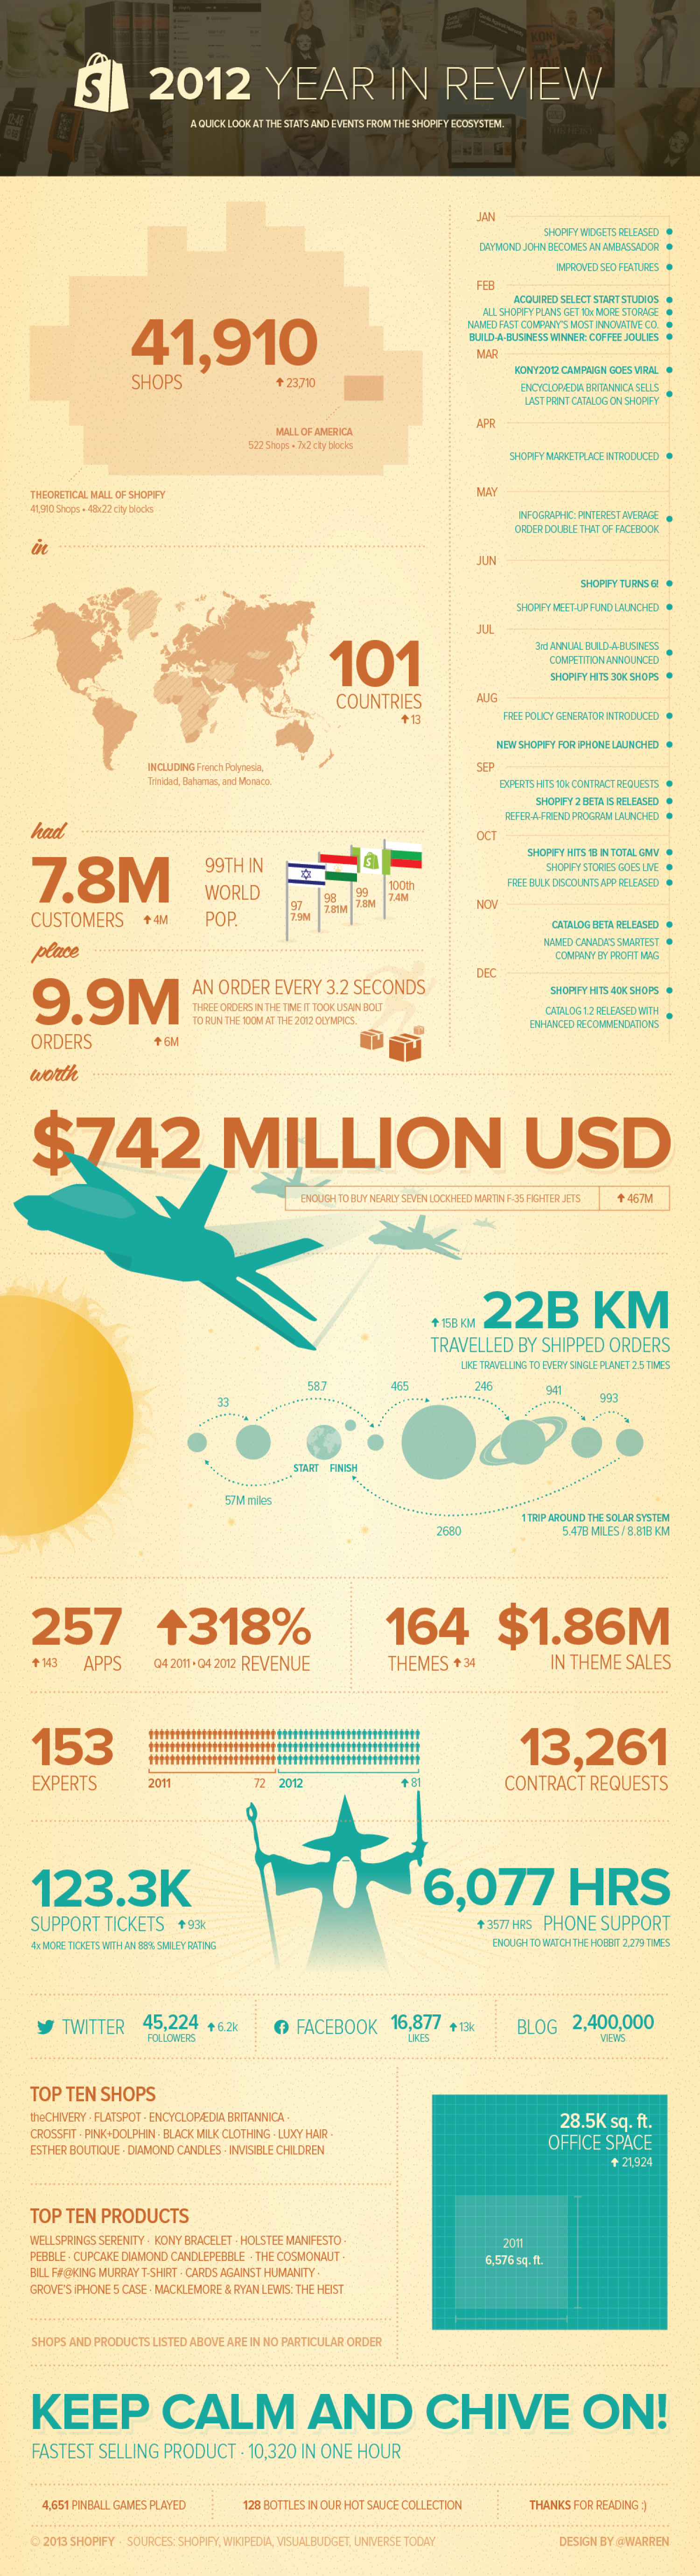 Shopify Year in Review 2012 Infographic